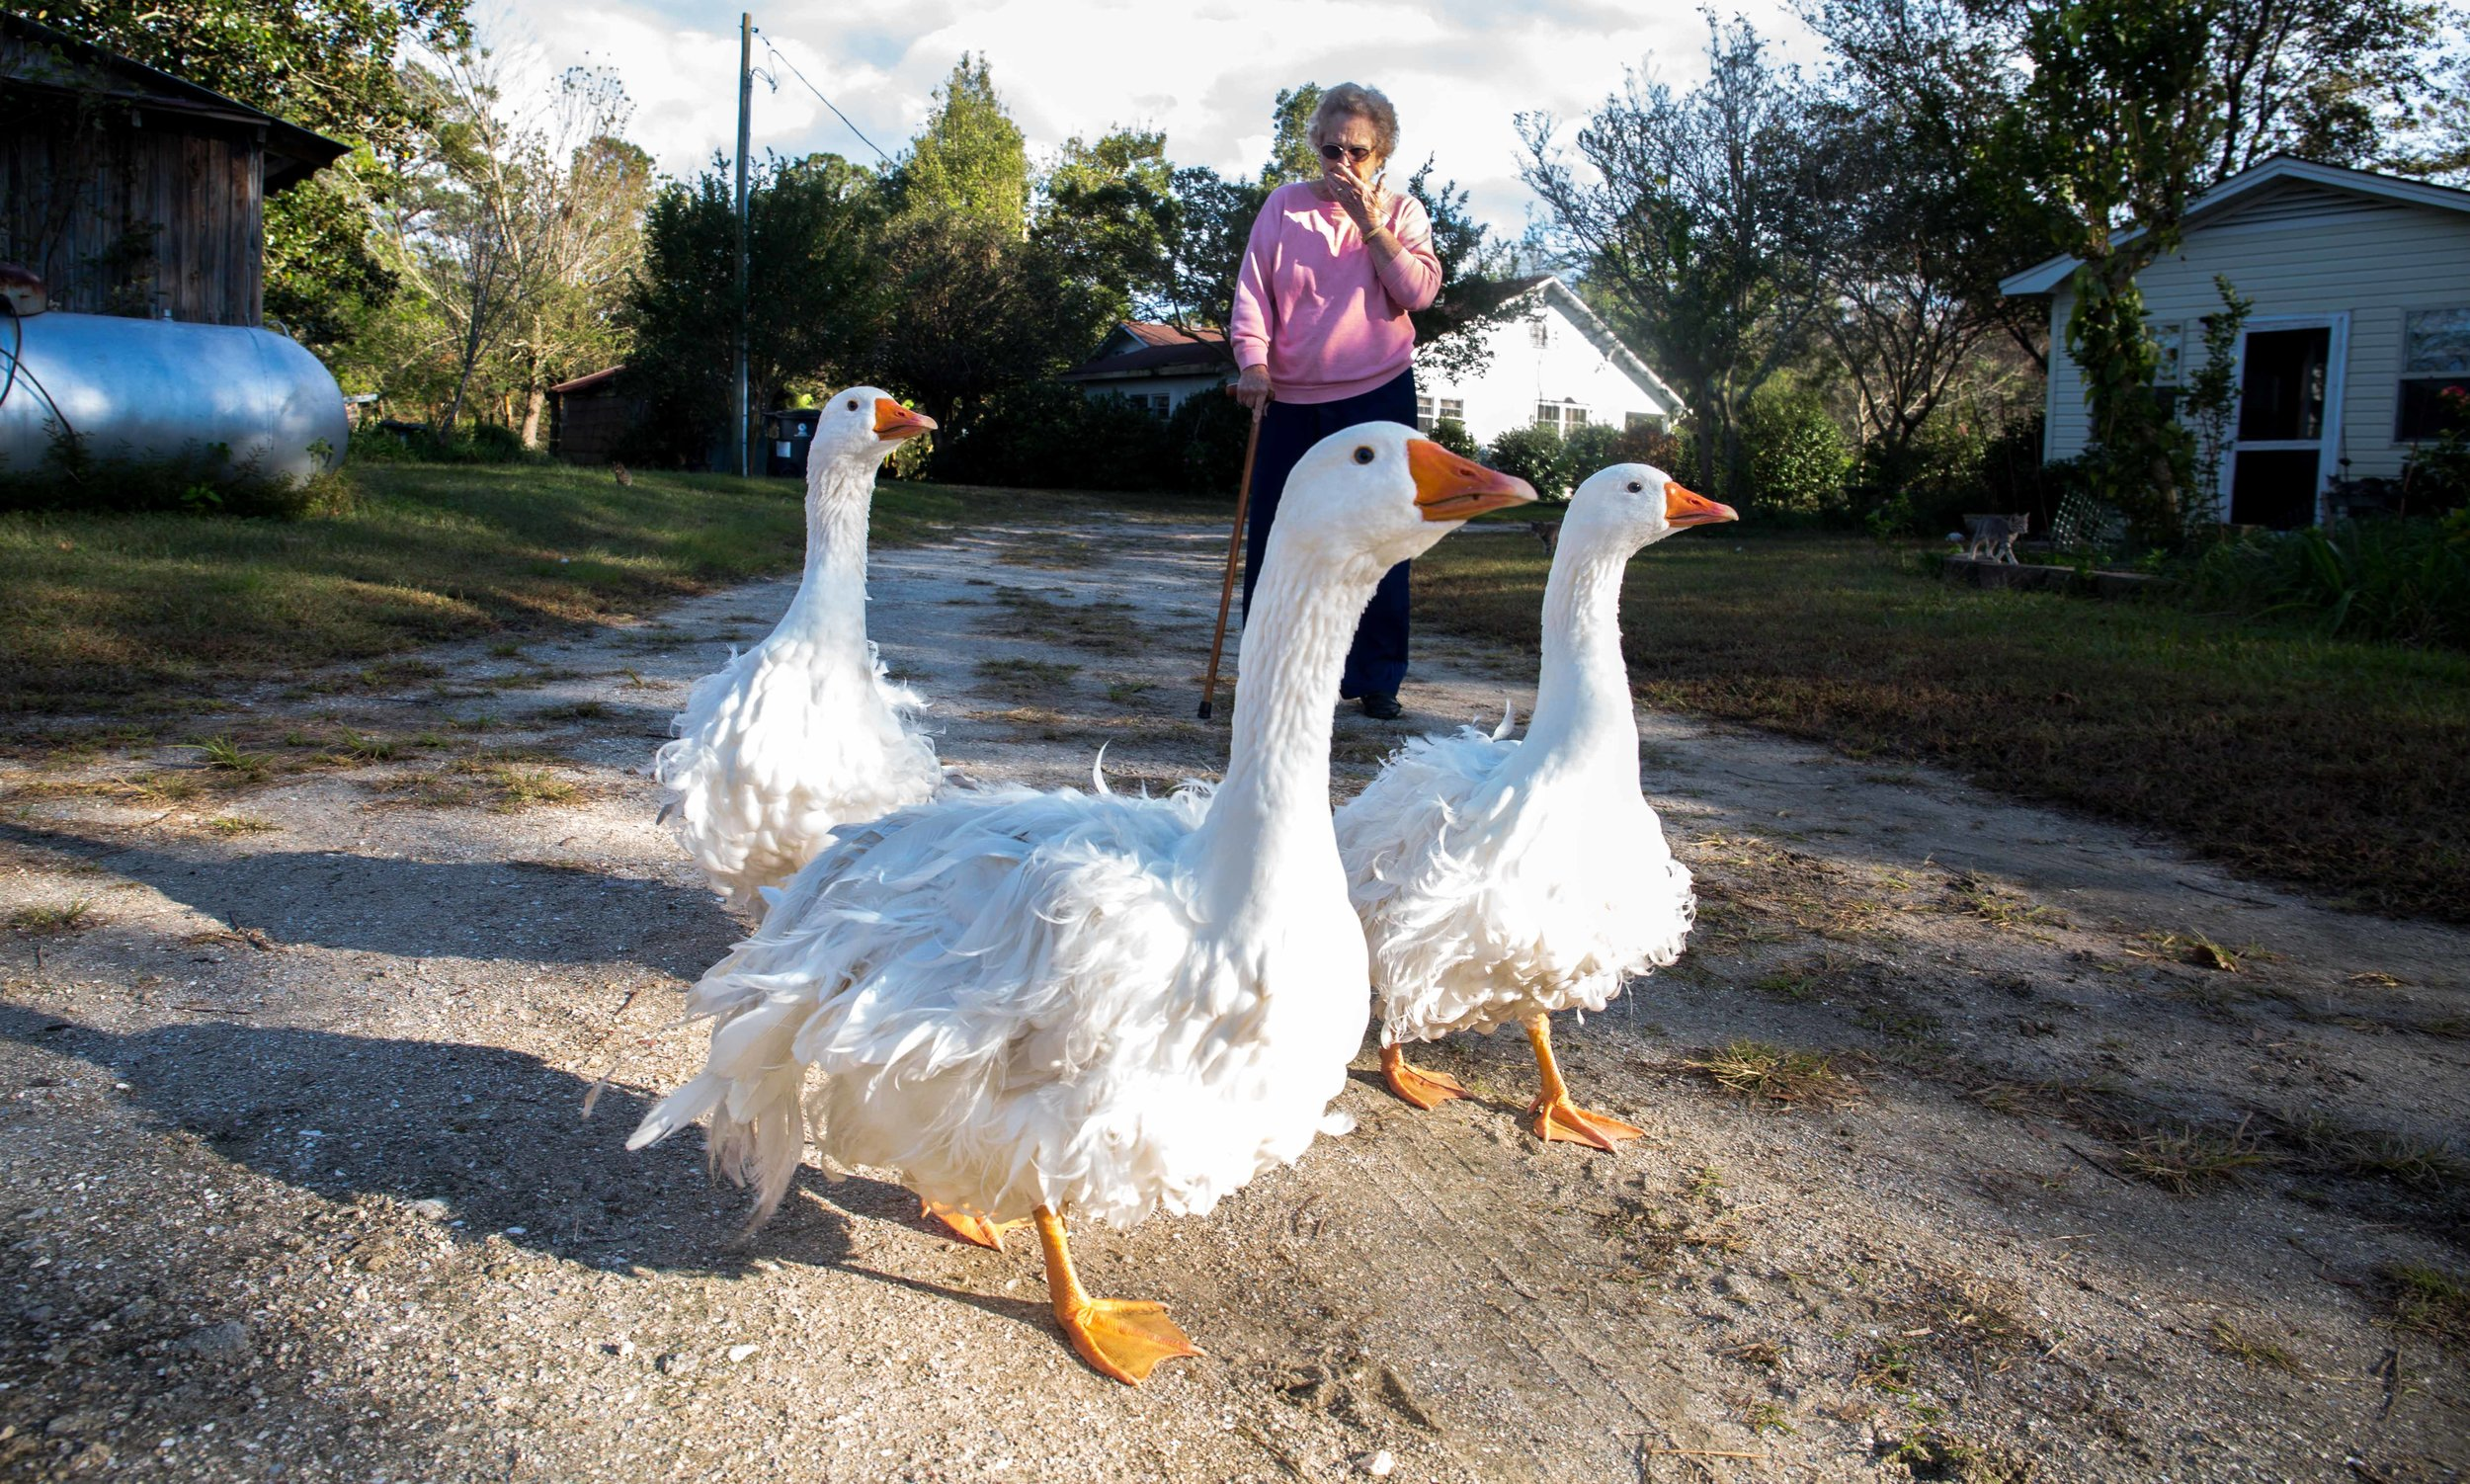 Grandma Suzanne herds the swans with her cane outside the Green Swamp in North Carolina. The Green Swamp is one of a handful of places where Fly Traps grow in the wild.